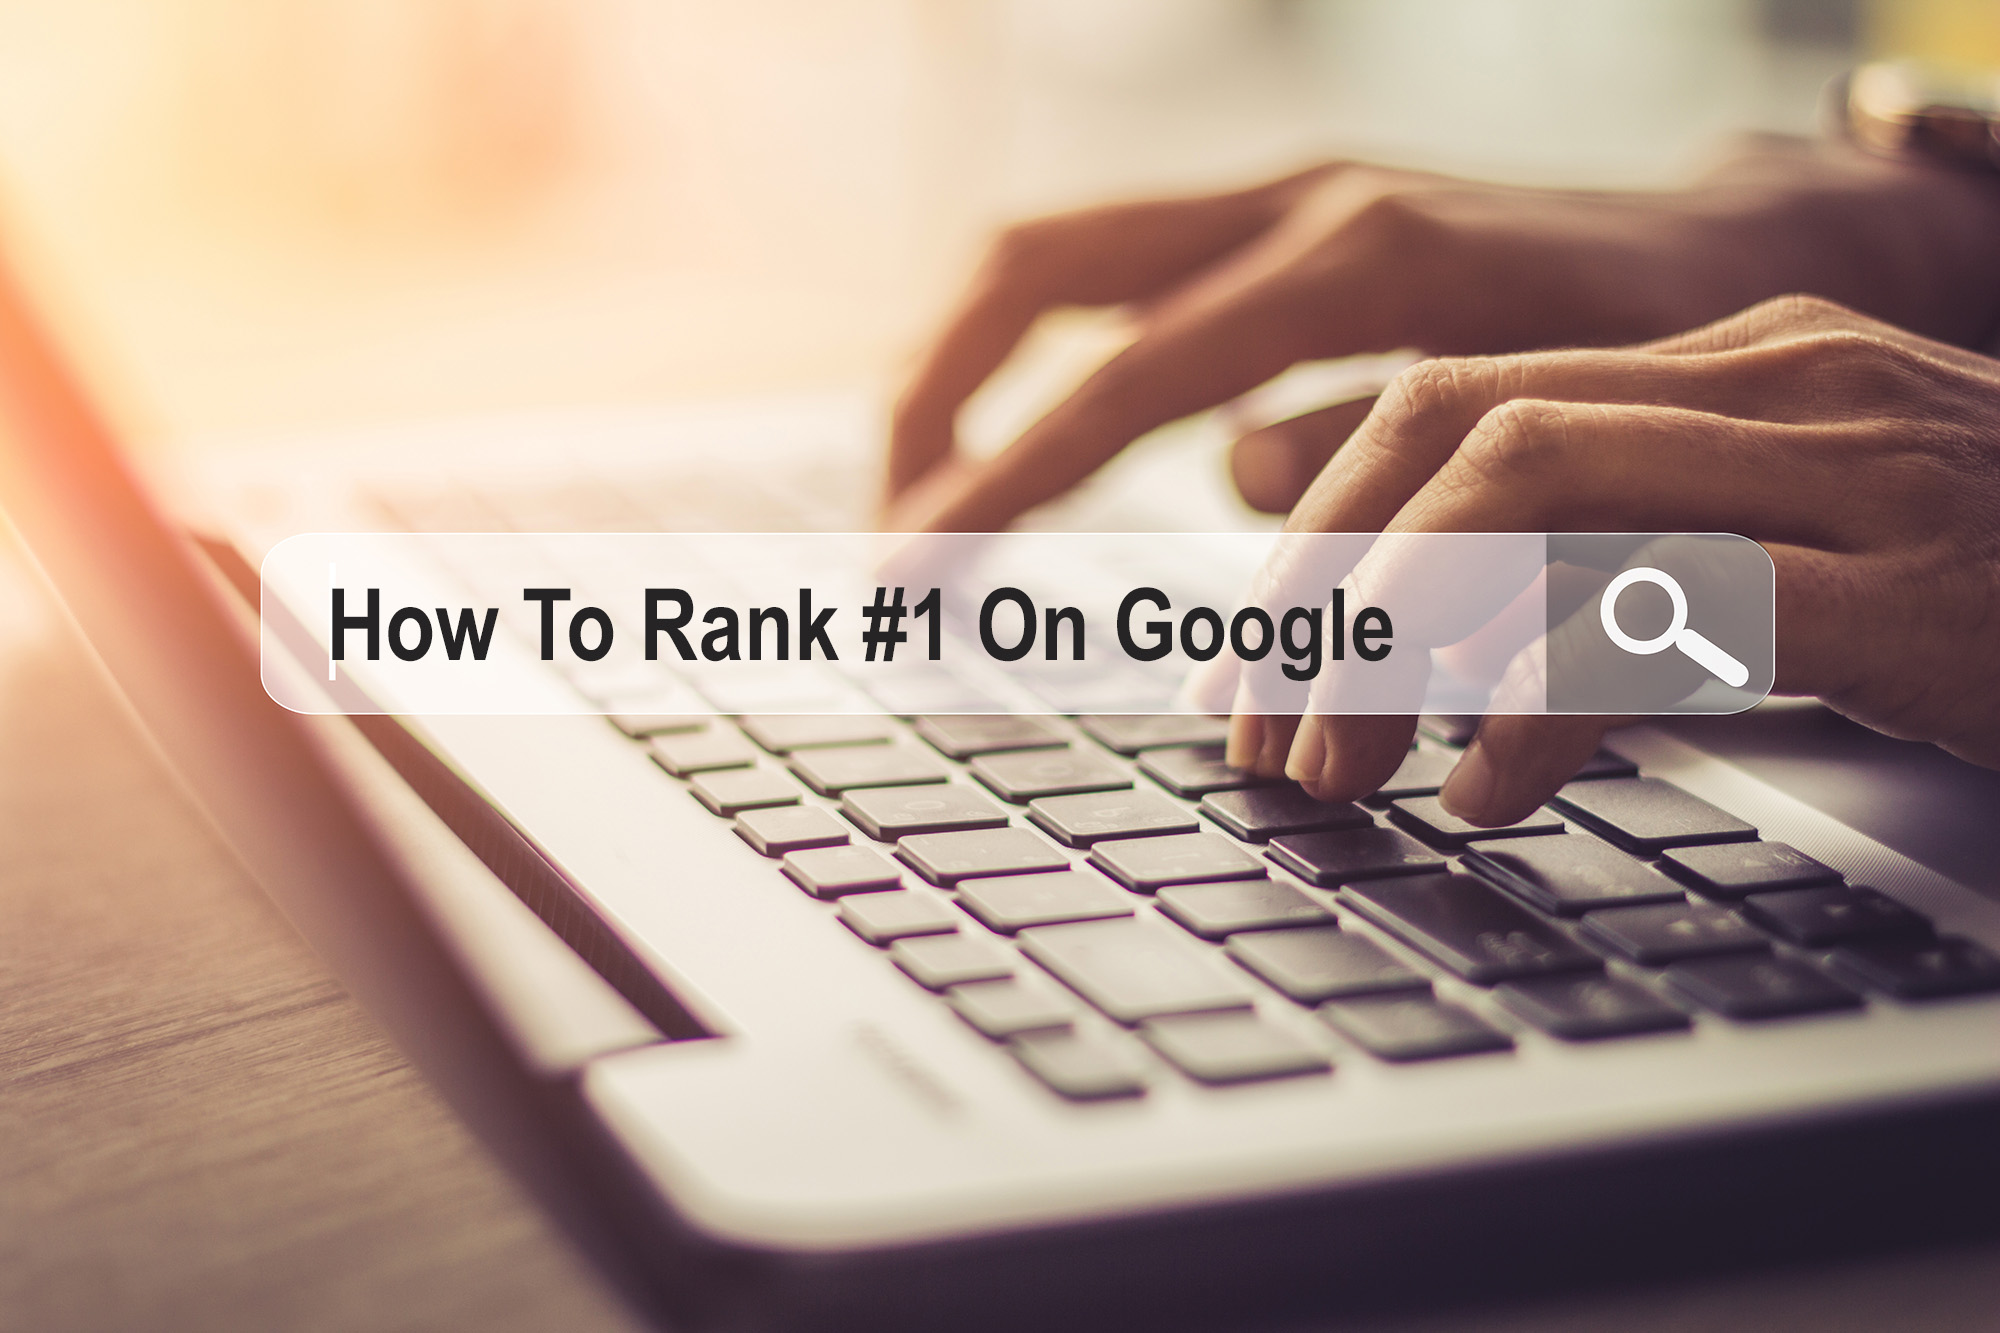 Ranking #1 On Google Is About More Than Just Your Website